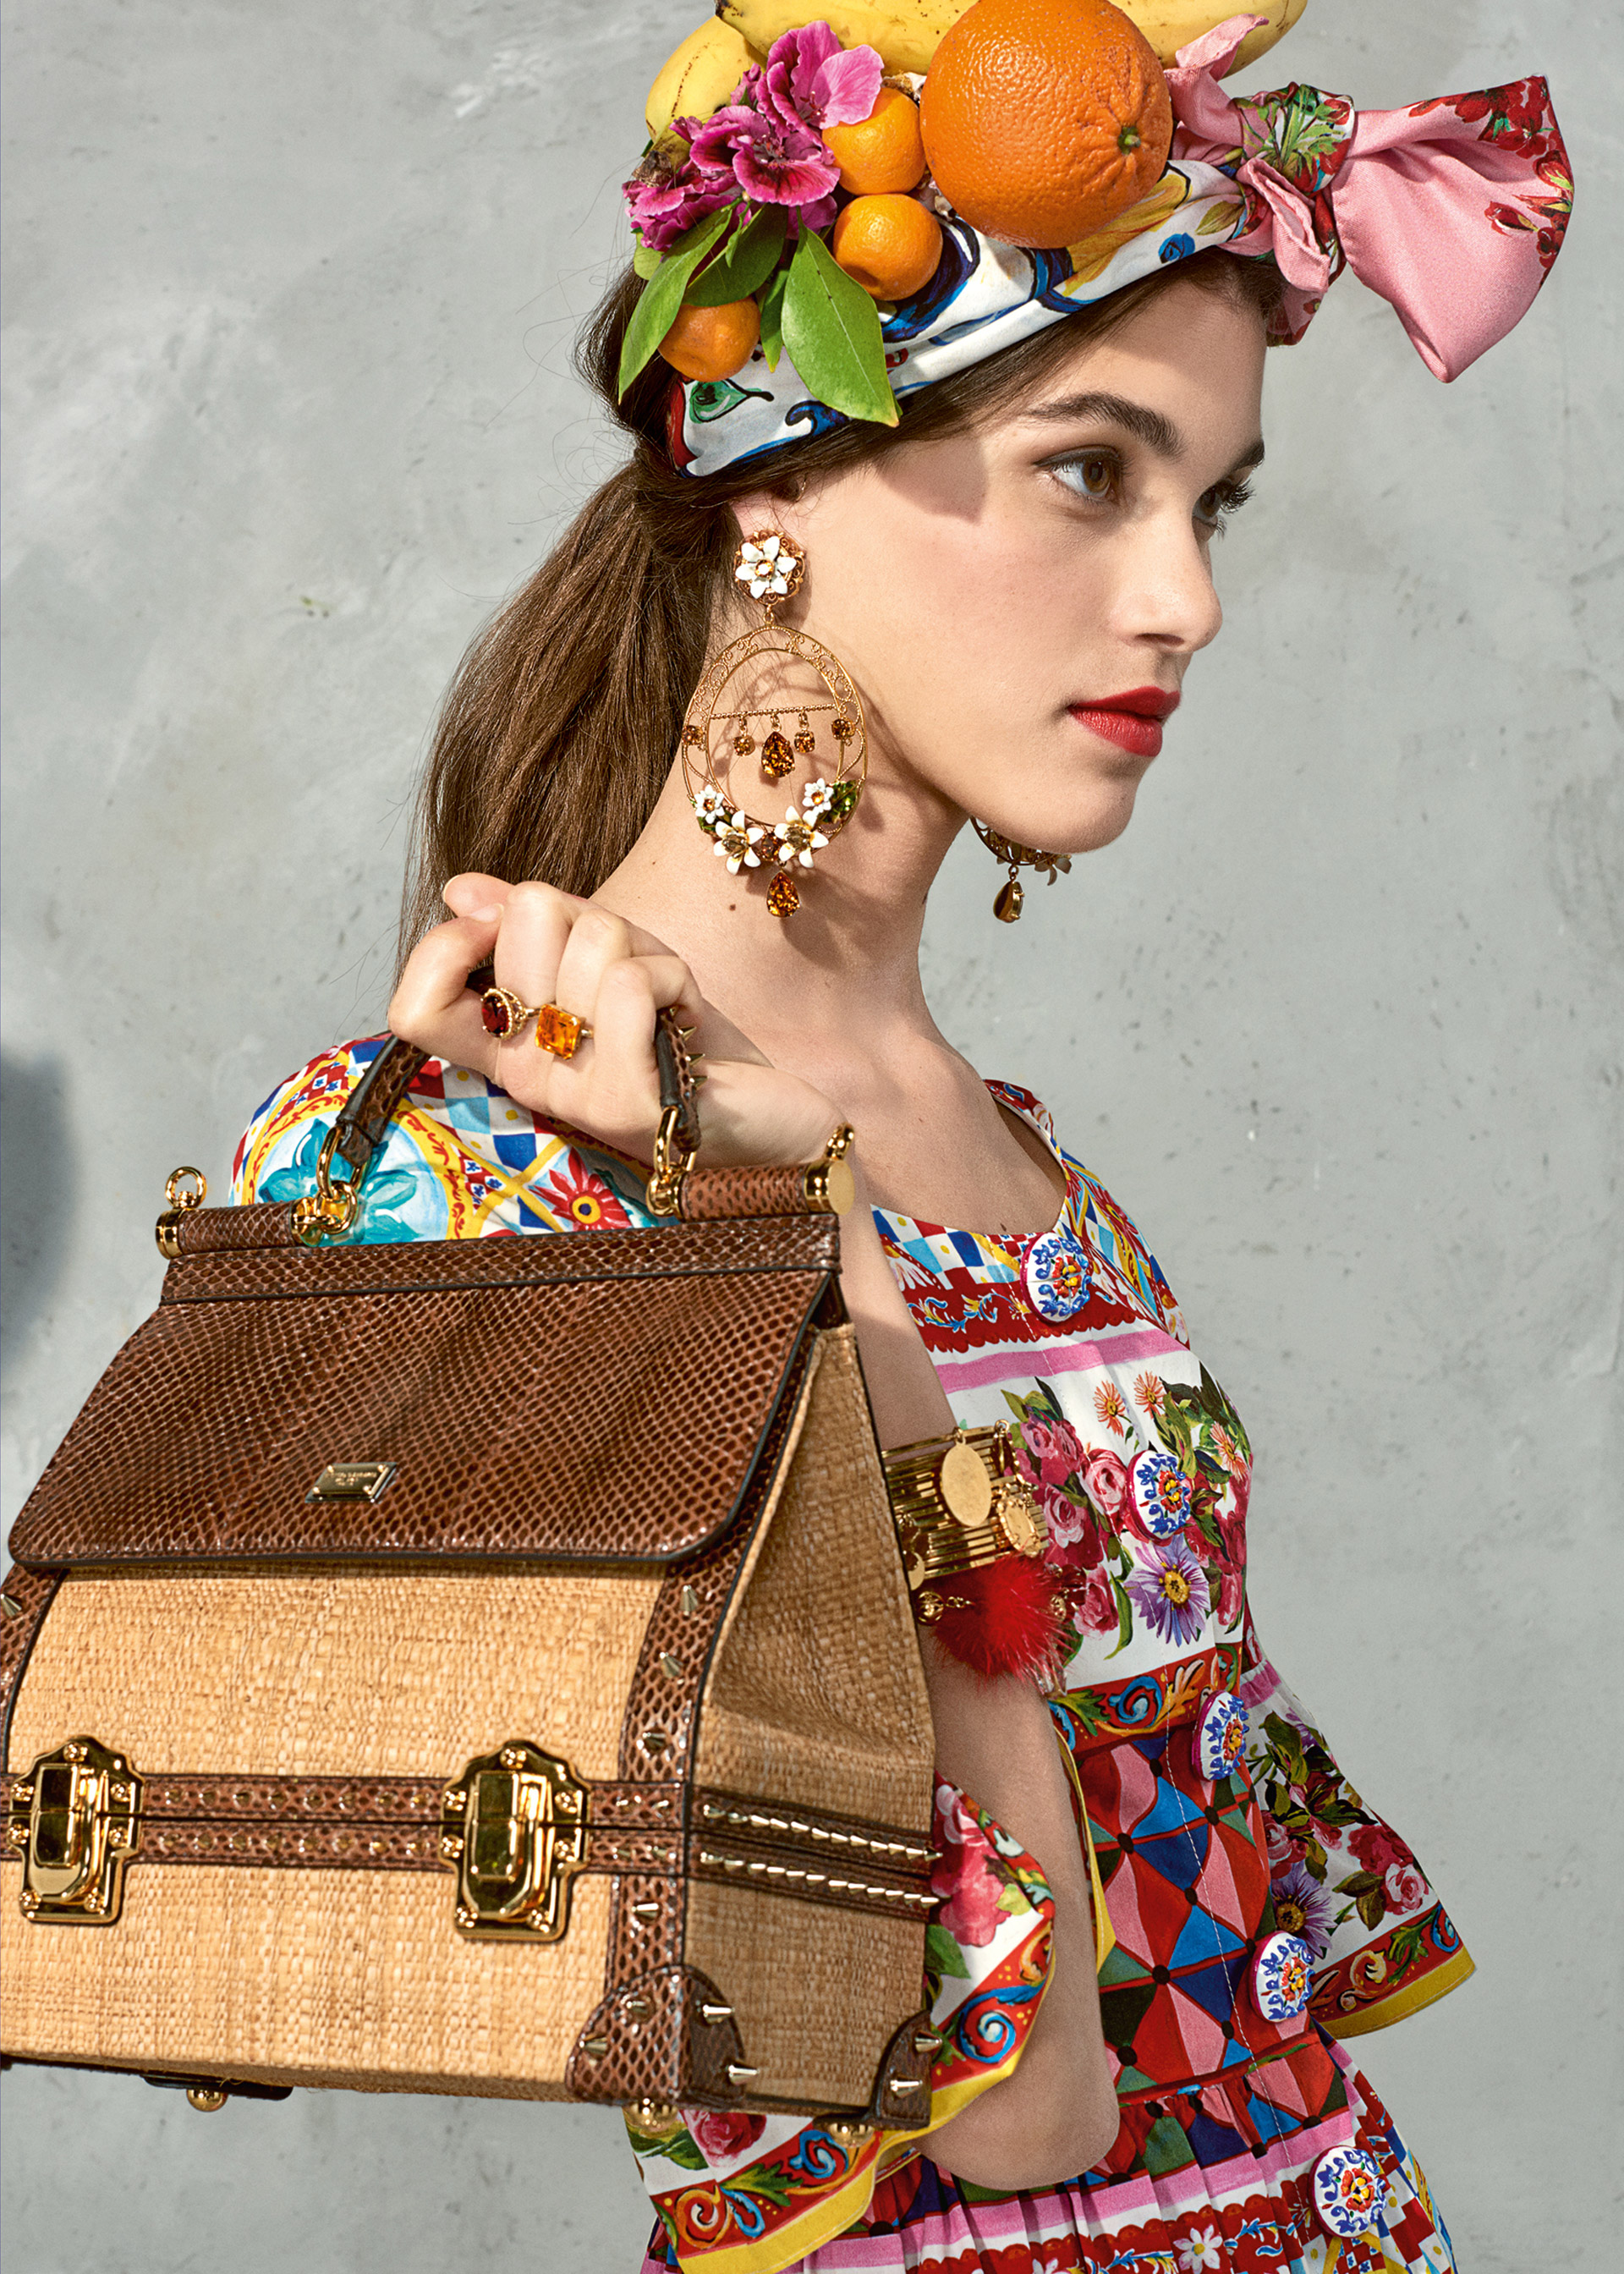 dolce and gabbana summer 2017 woman collection 90 - Dolce & Gabbana/Spring Summer 2017 Collection/ Mambo